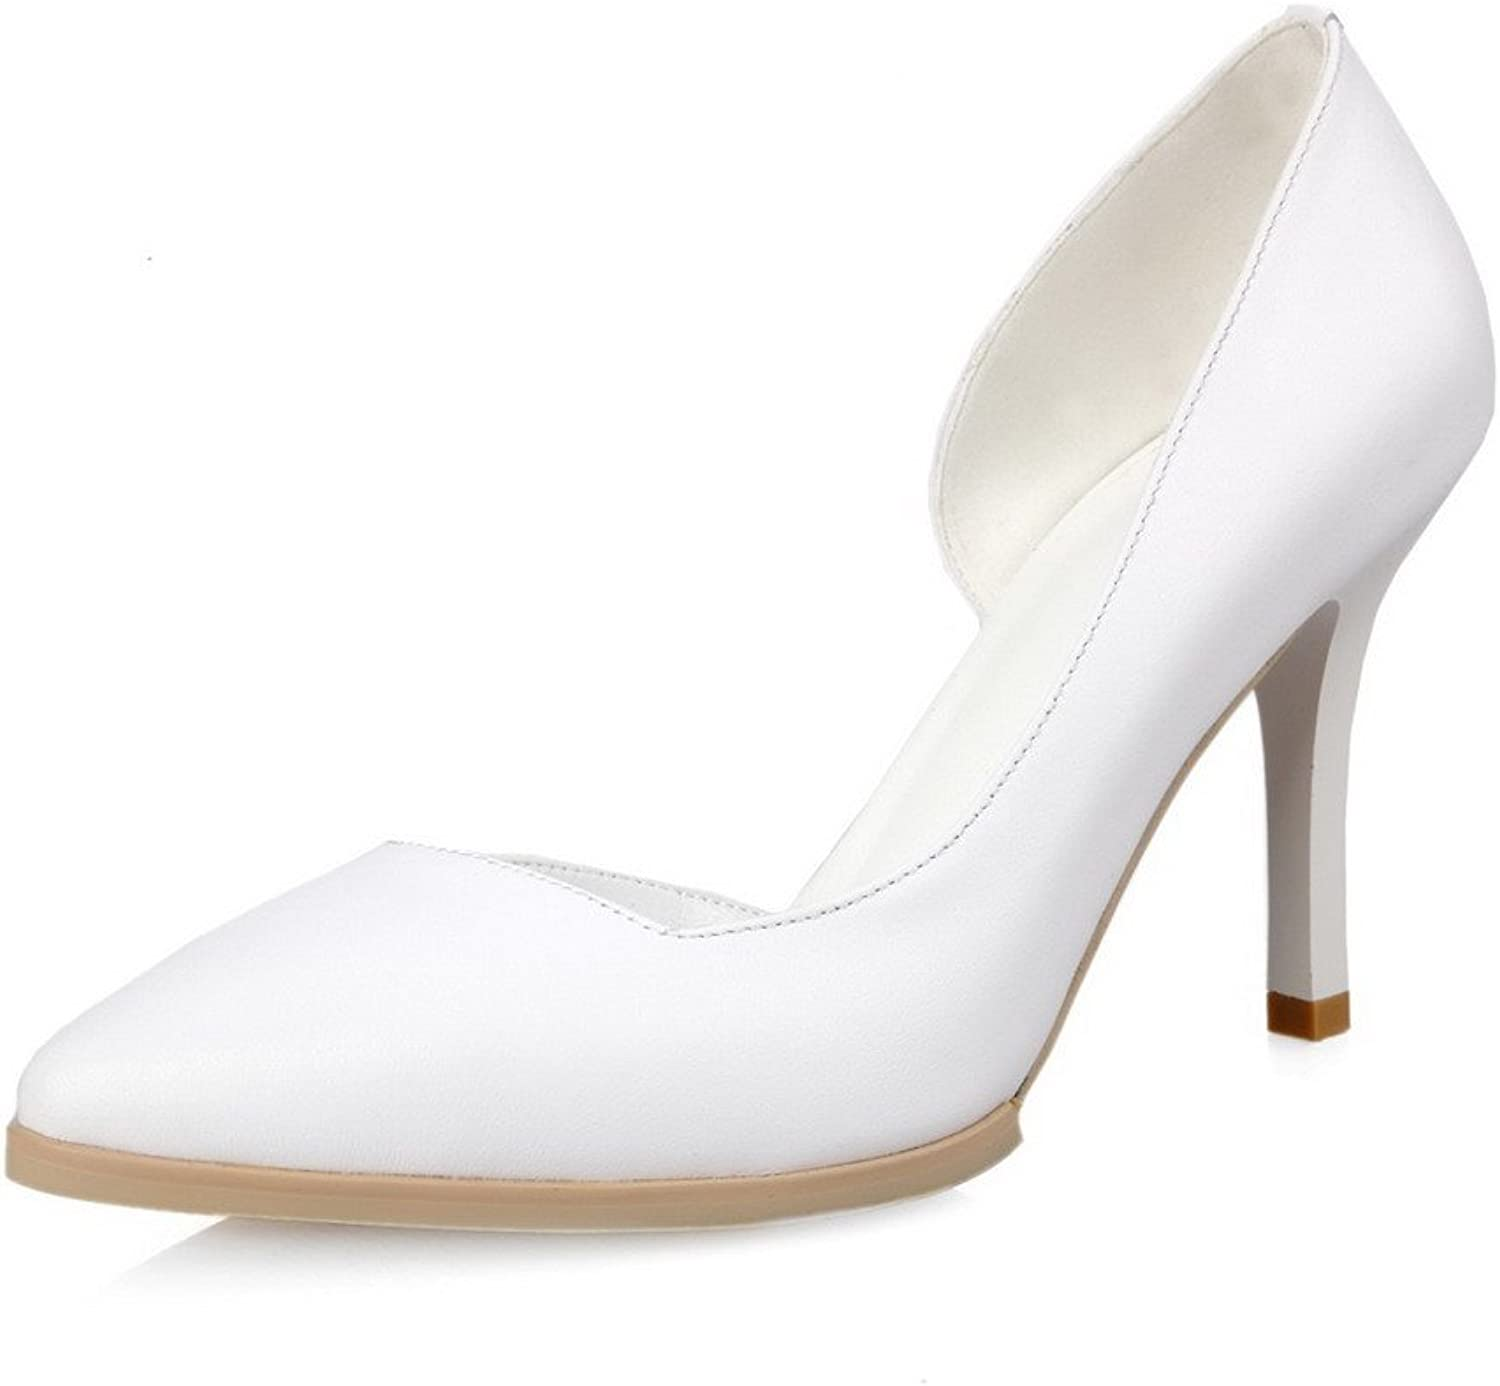 AllhqFashion Women's Closed Pointed Toe Cow Leather High Heels Pumps with Stiletto and Curves Style